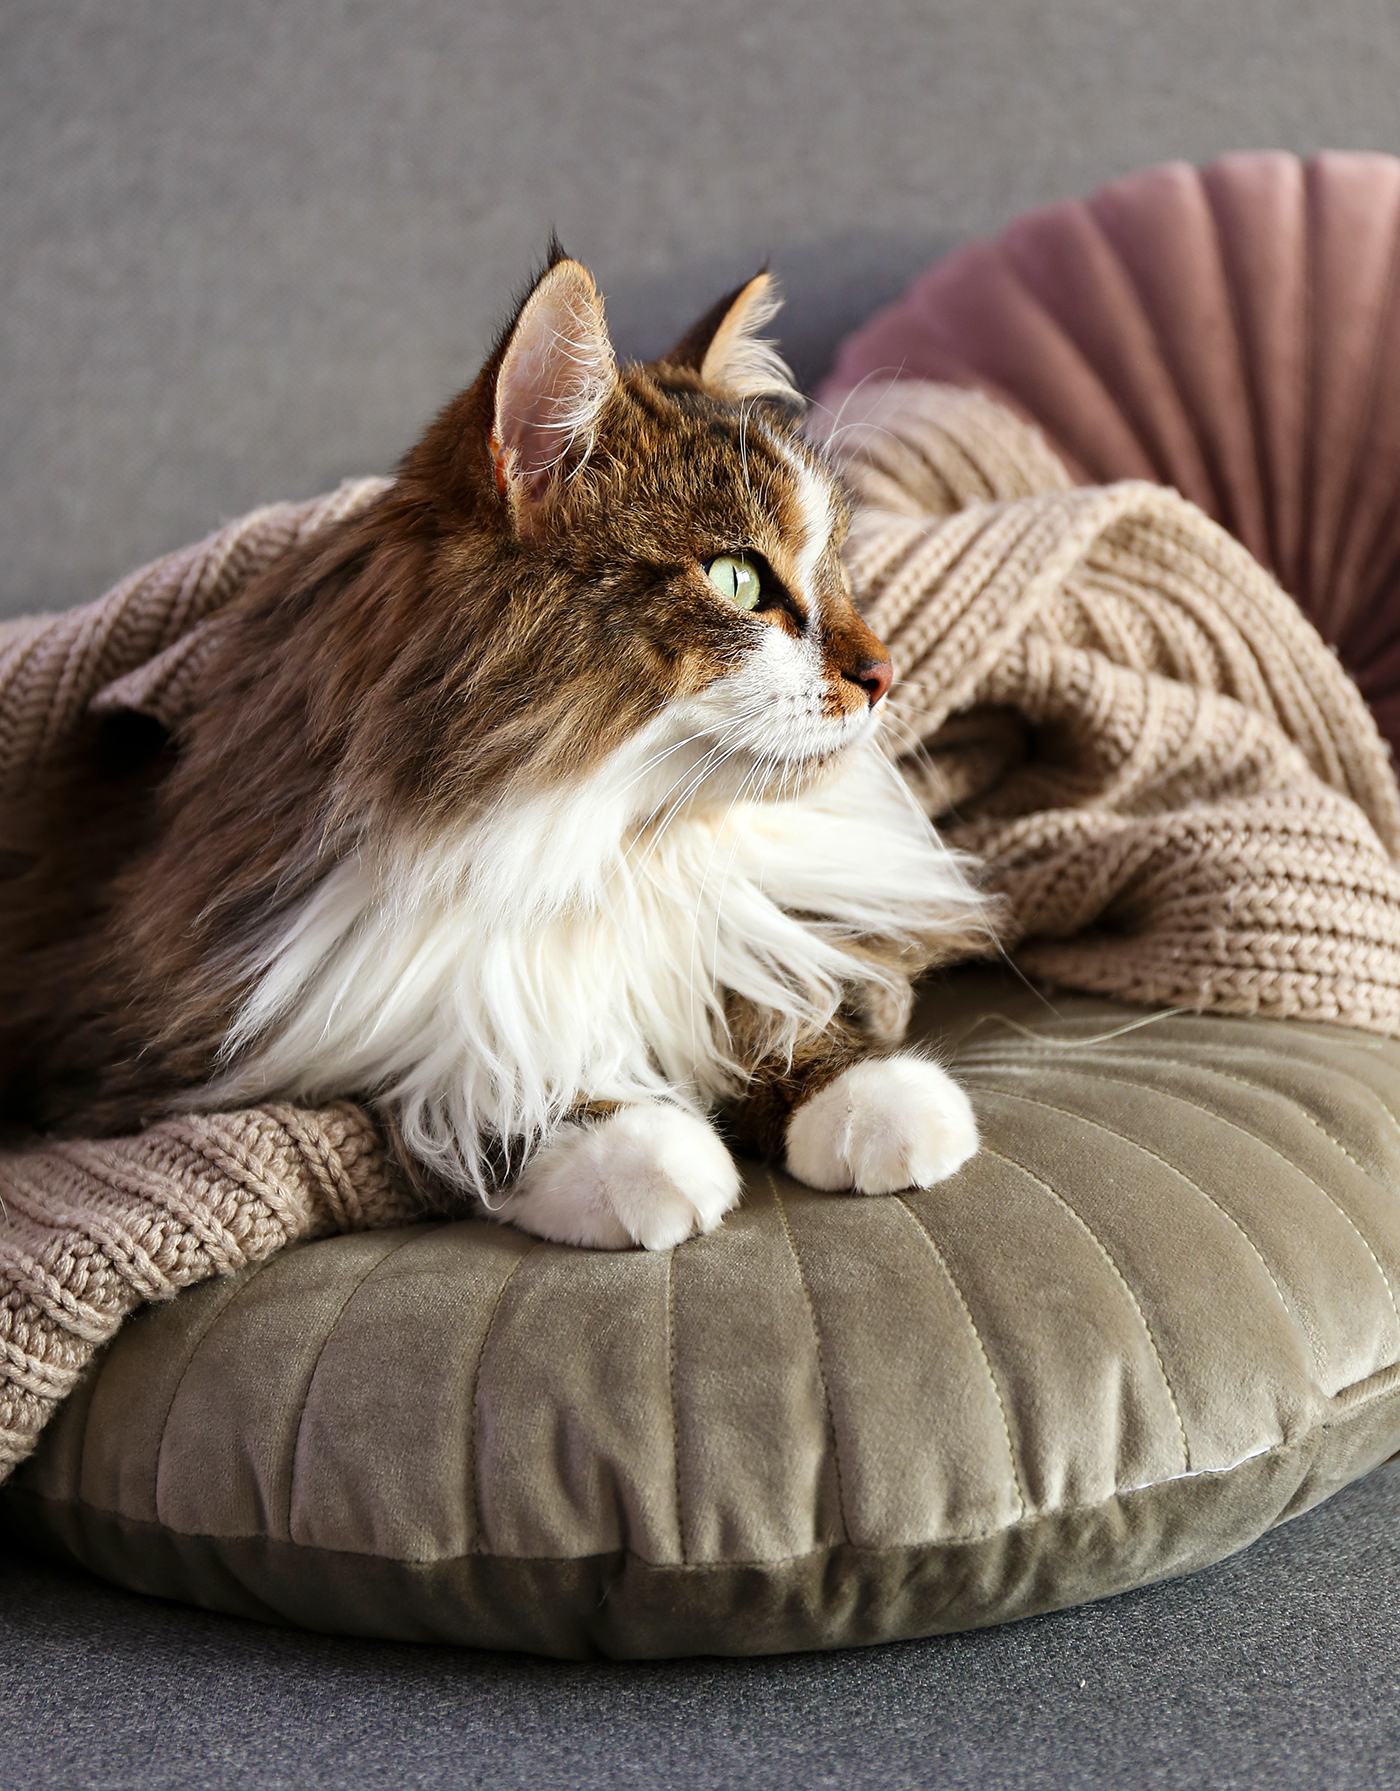 siberian cat resting on pillow and blanket